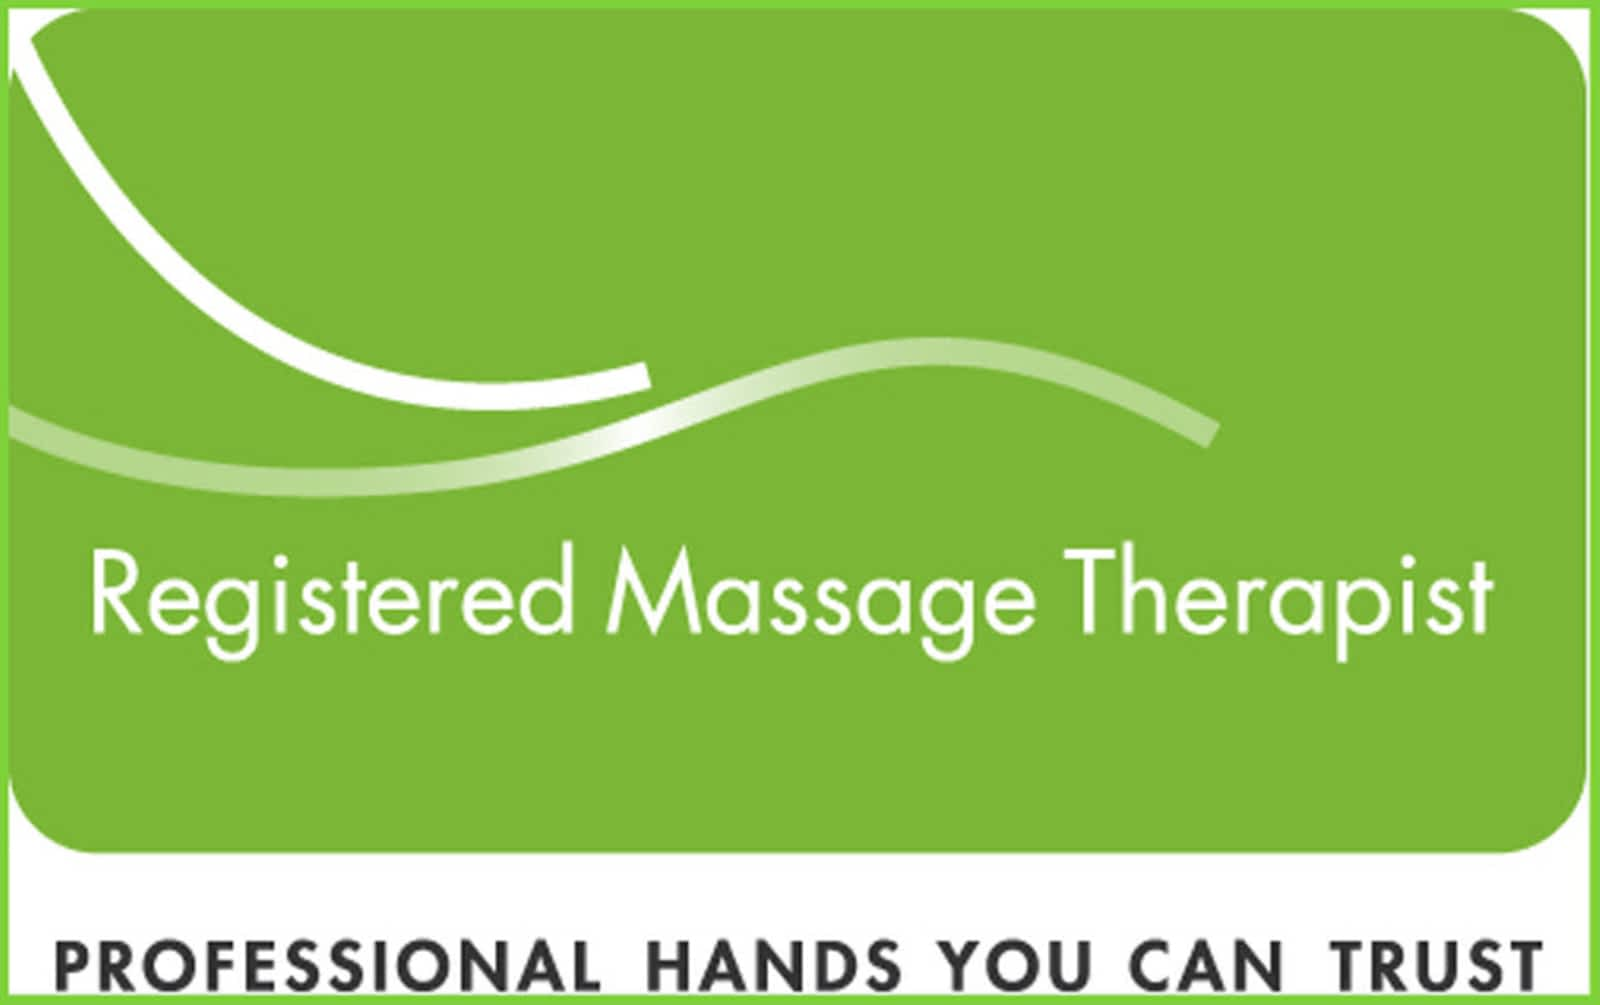 Why Use A RMT Registered Massage Therapist